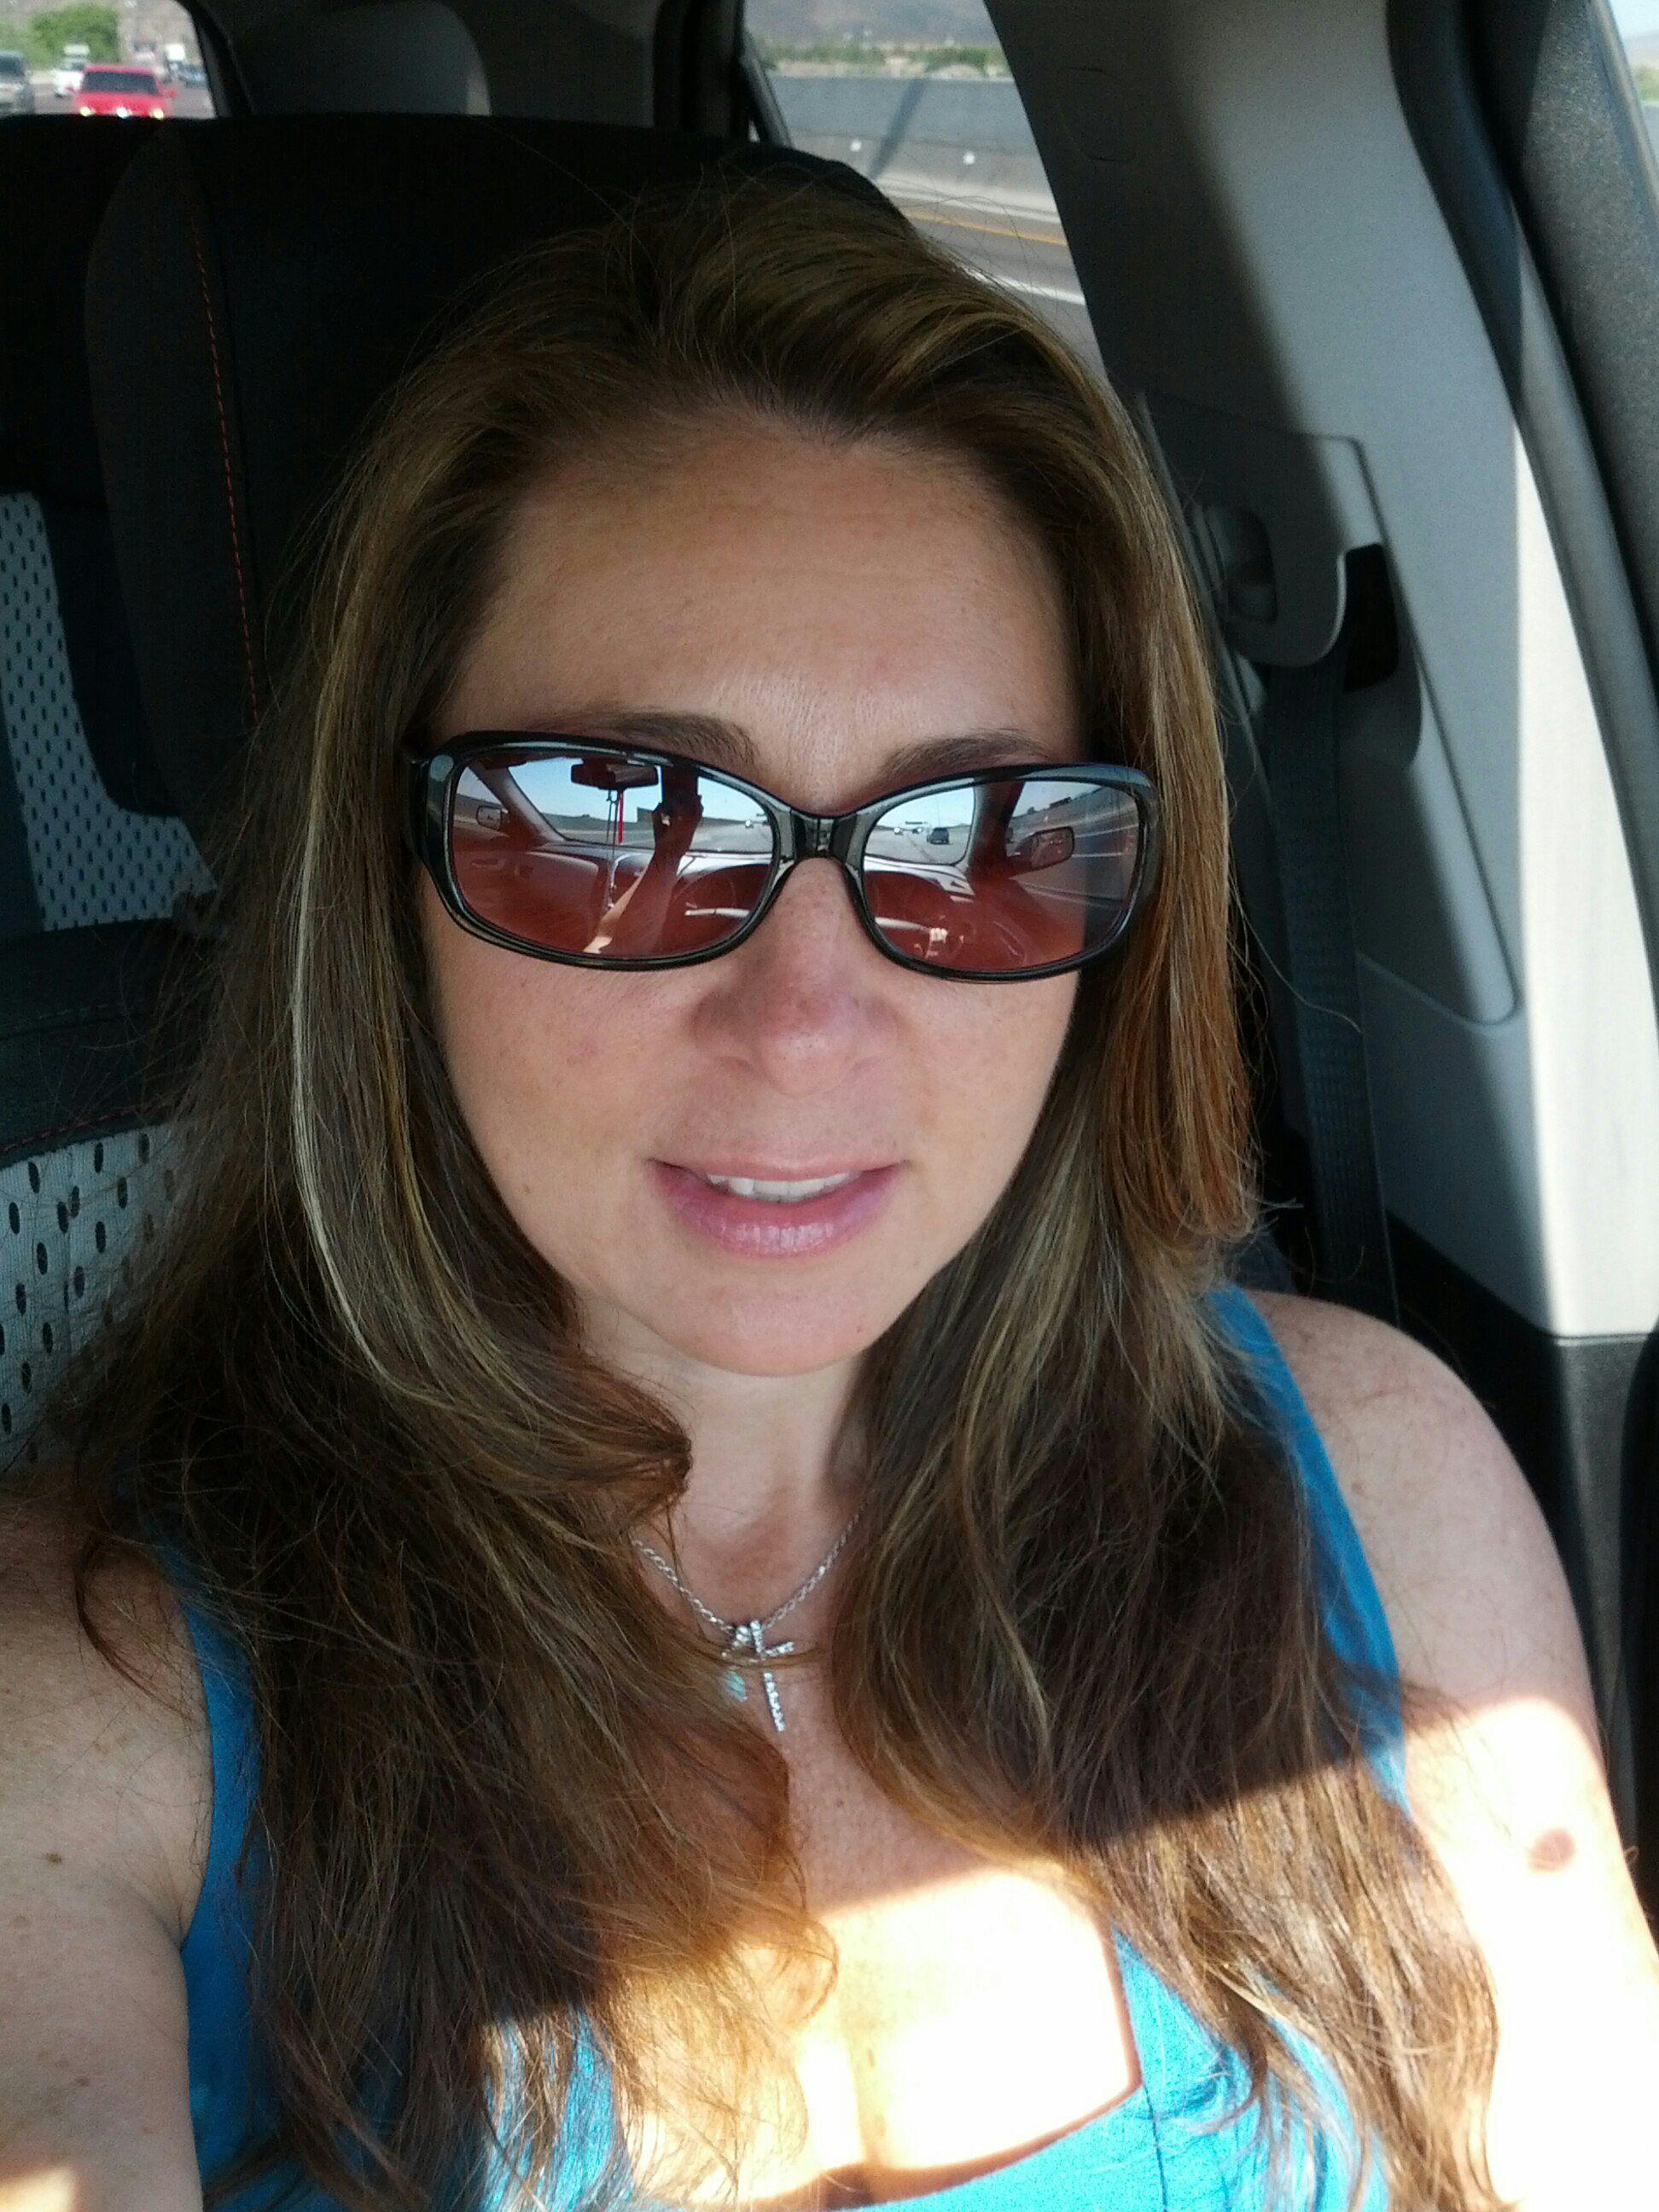 meet christine singles You could use other popular christian dating sites such as mingle and cafe but why pay when cdff offers you a chance to meet christian singles without a fee.